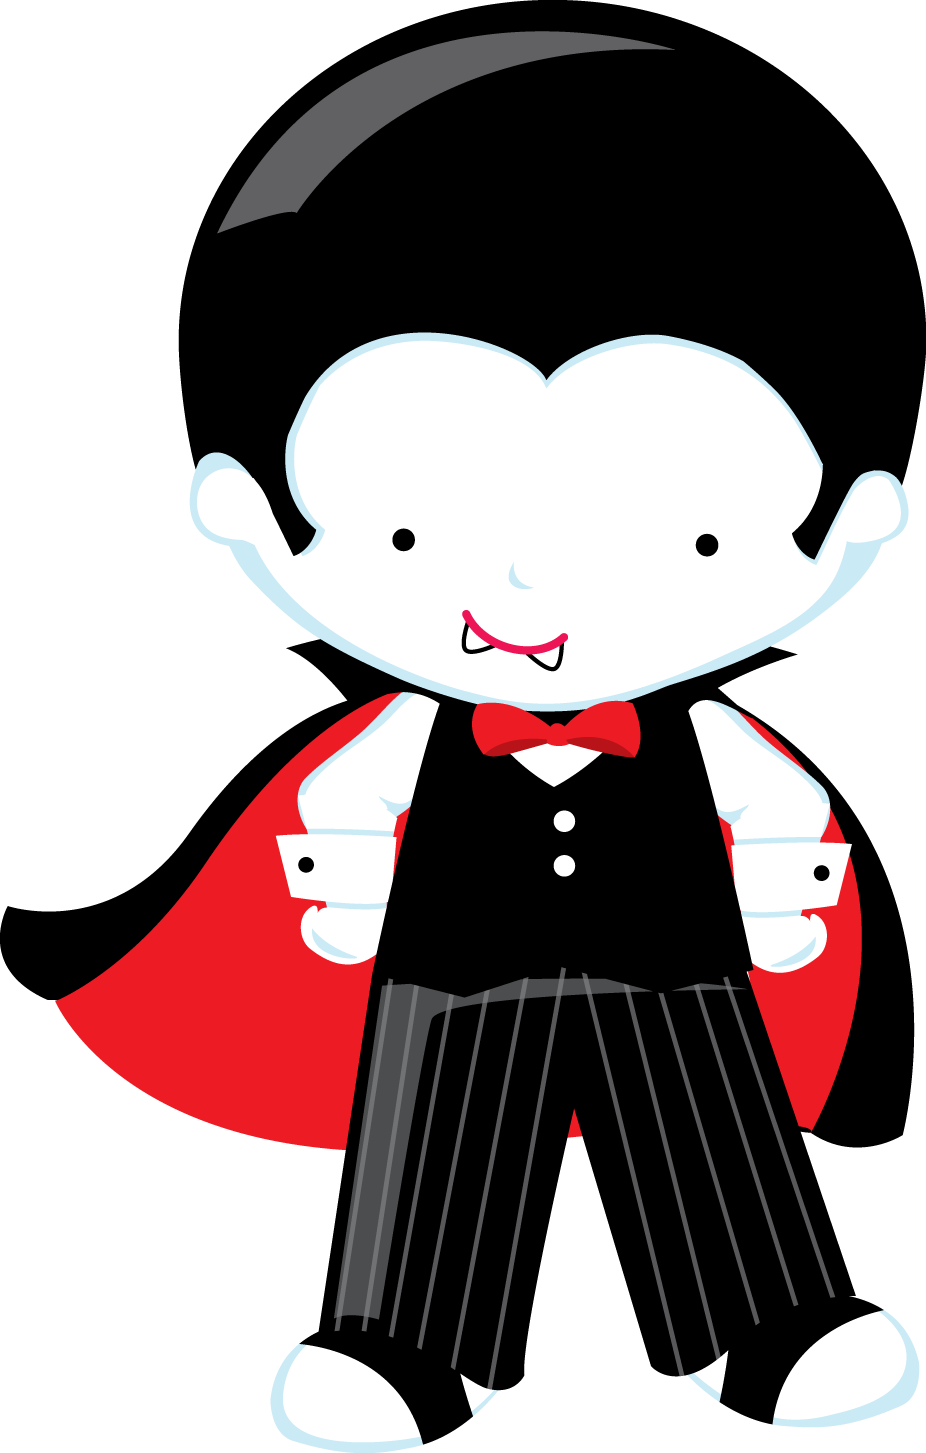 Zwd witch dracula png. Cute halloween vampire clipart